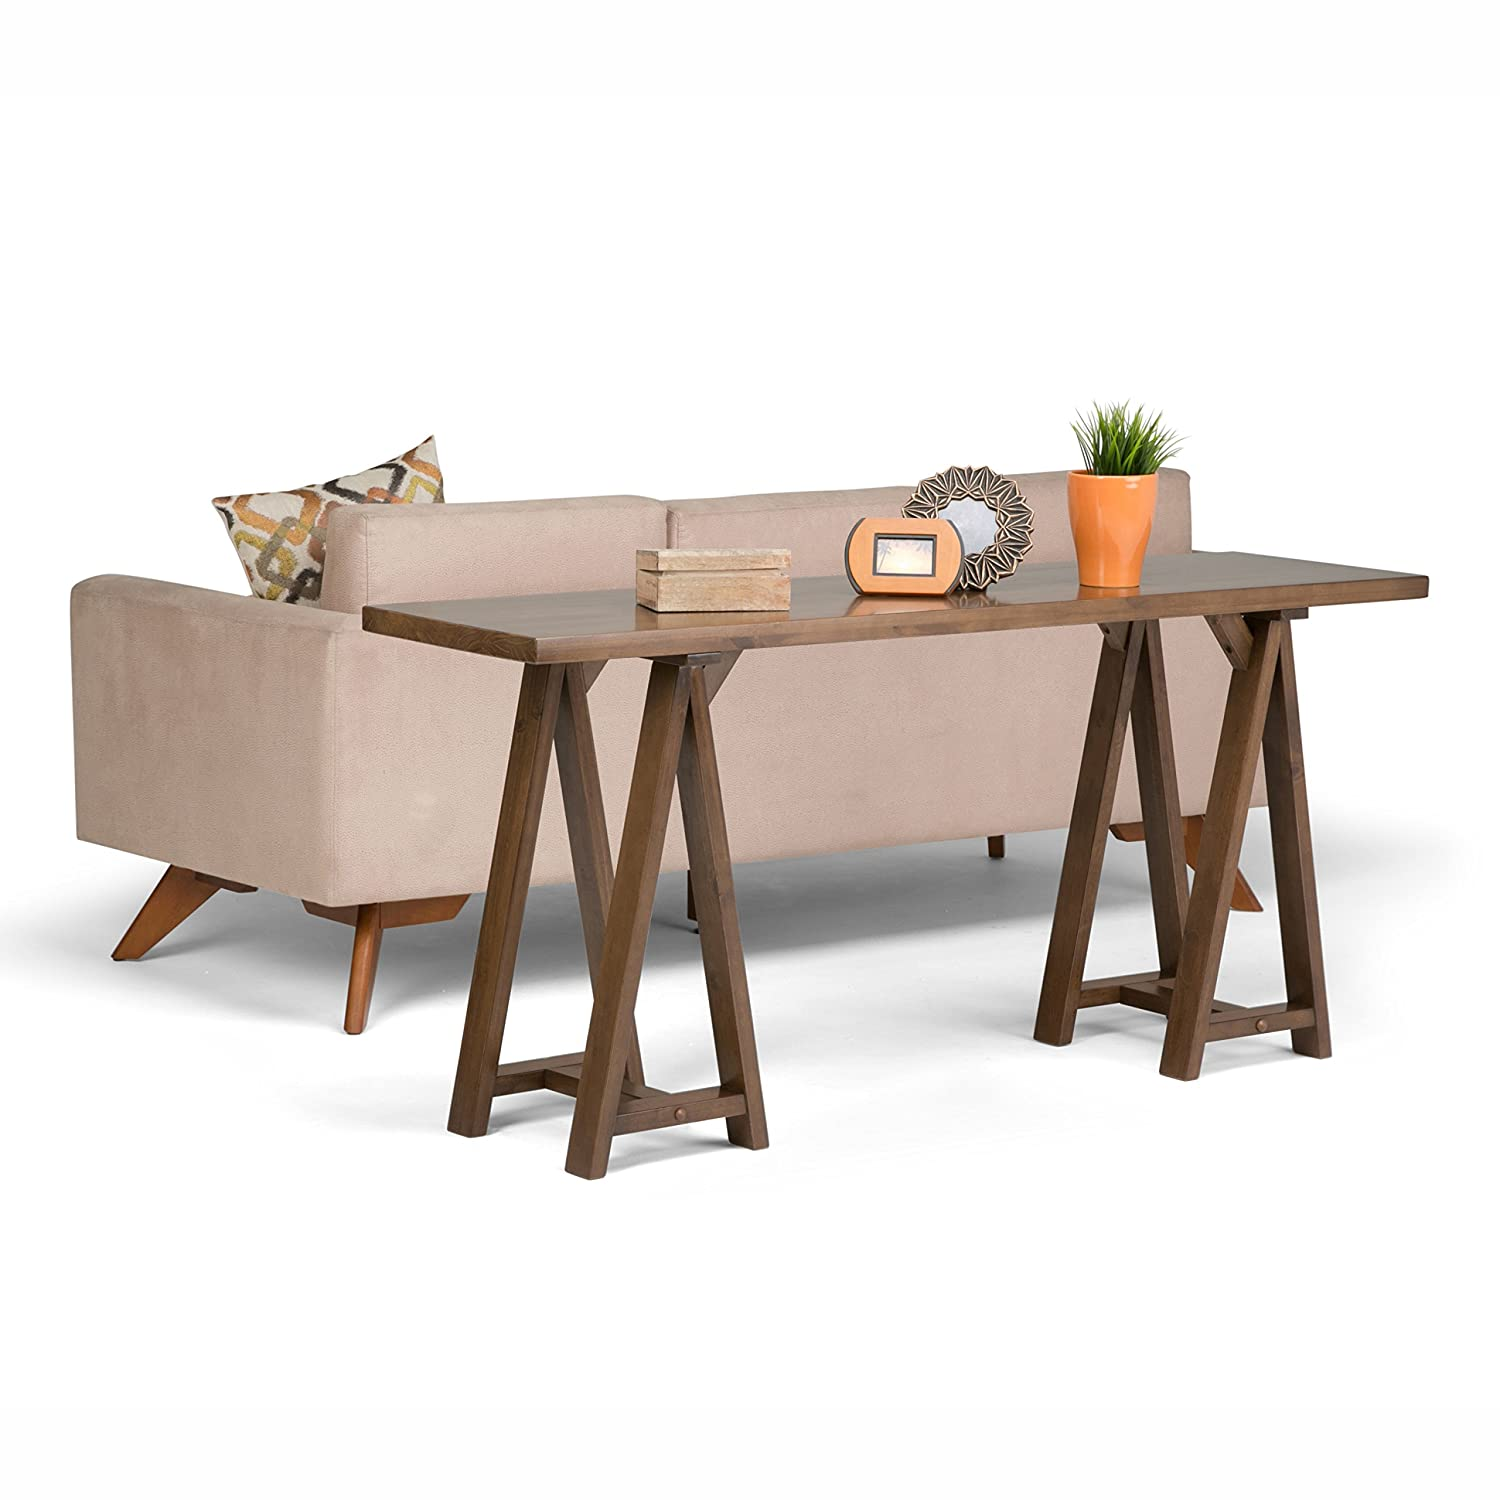 Simpli Home Sawhorse Wide Console Sofa Table, Medium Saddle Brown